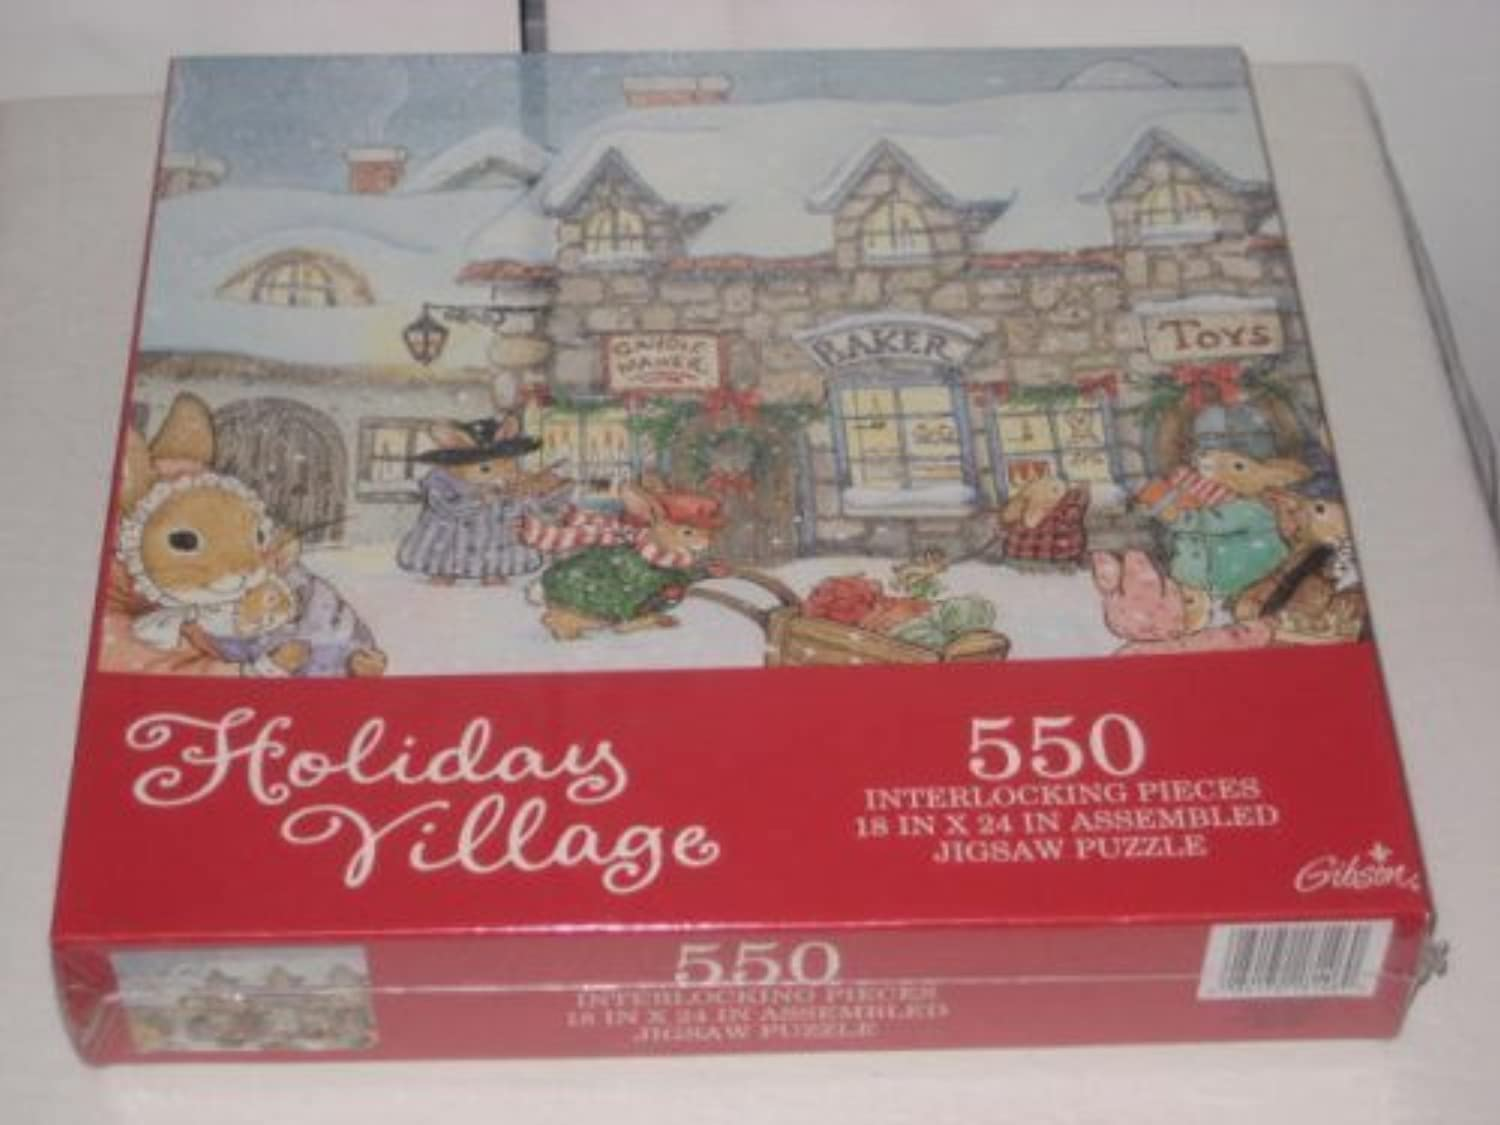 Holiday Village 550 Interlocre Pieces Jigsaw Puzzle by Gibson